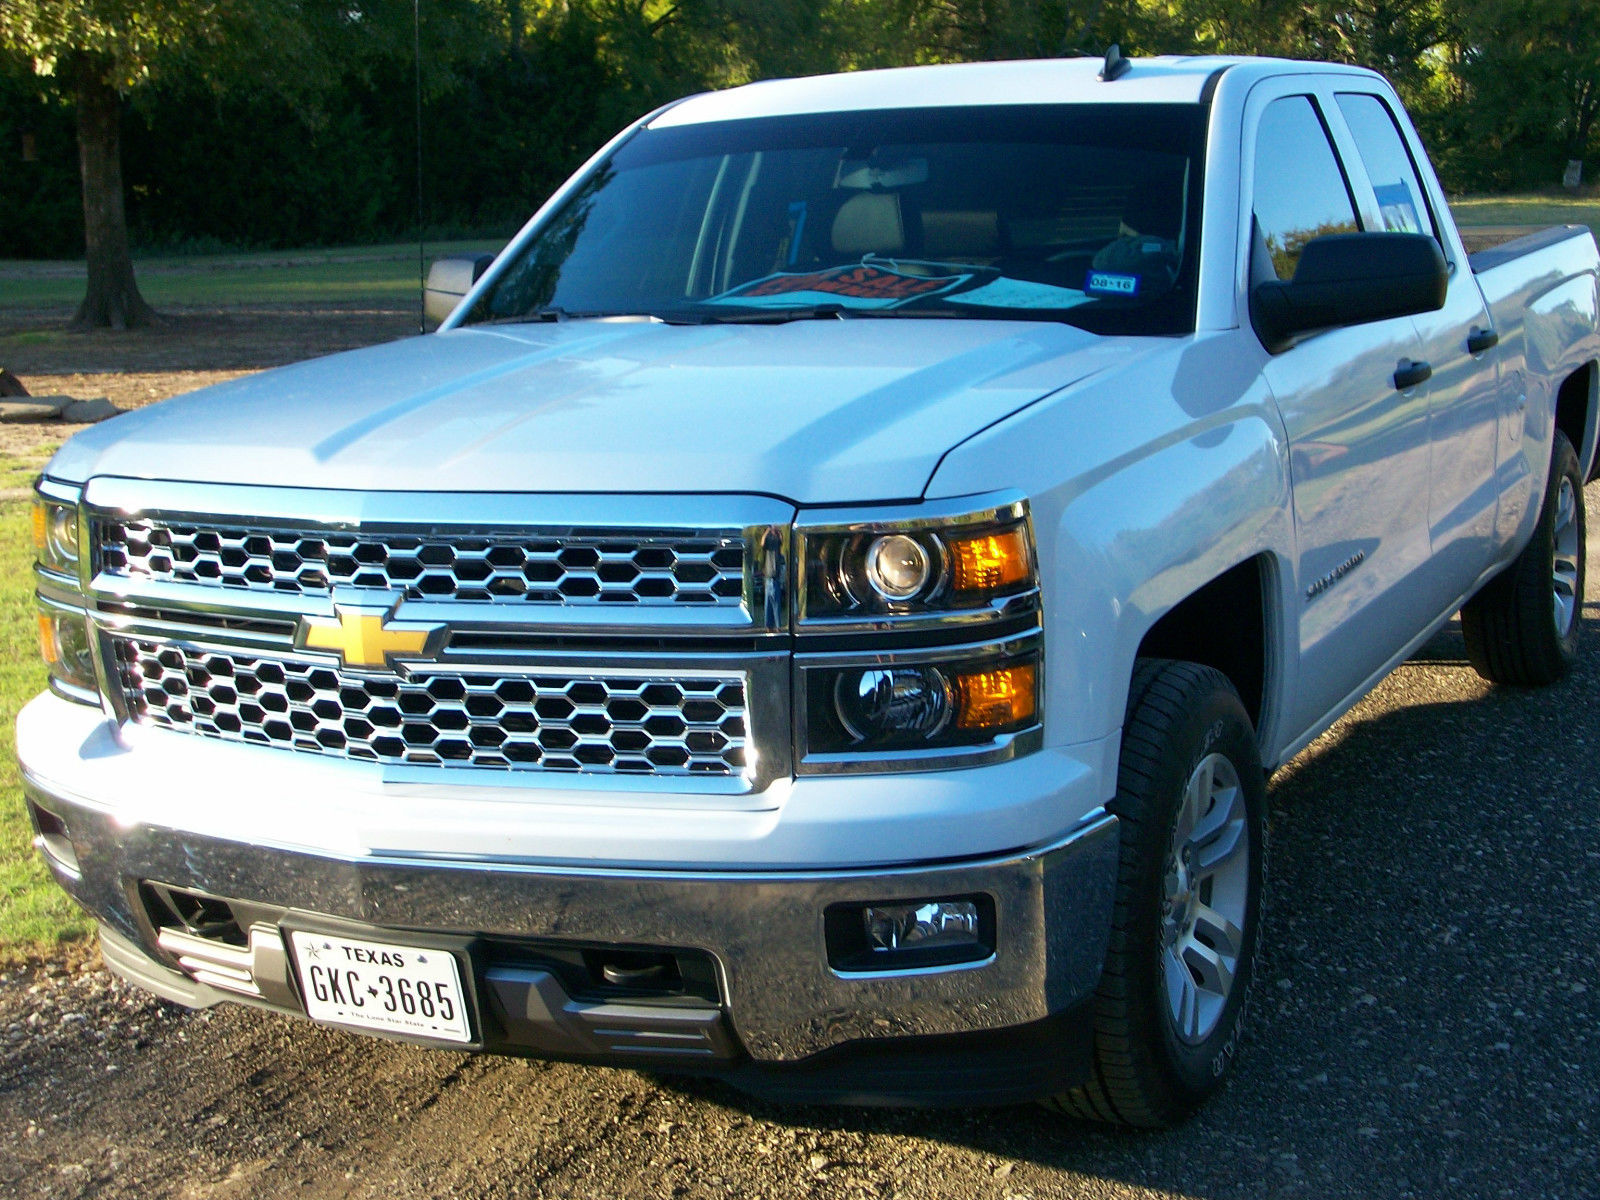 2014 chevy silverado double cab 4 4 for sale. Black Bedroom Furniture Sets. Home Design Ideas